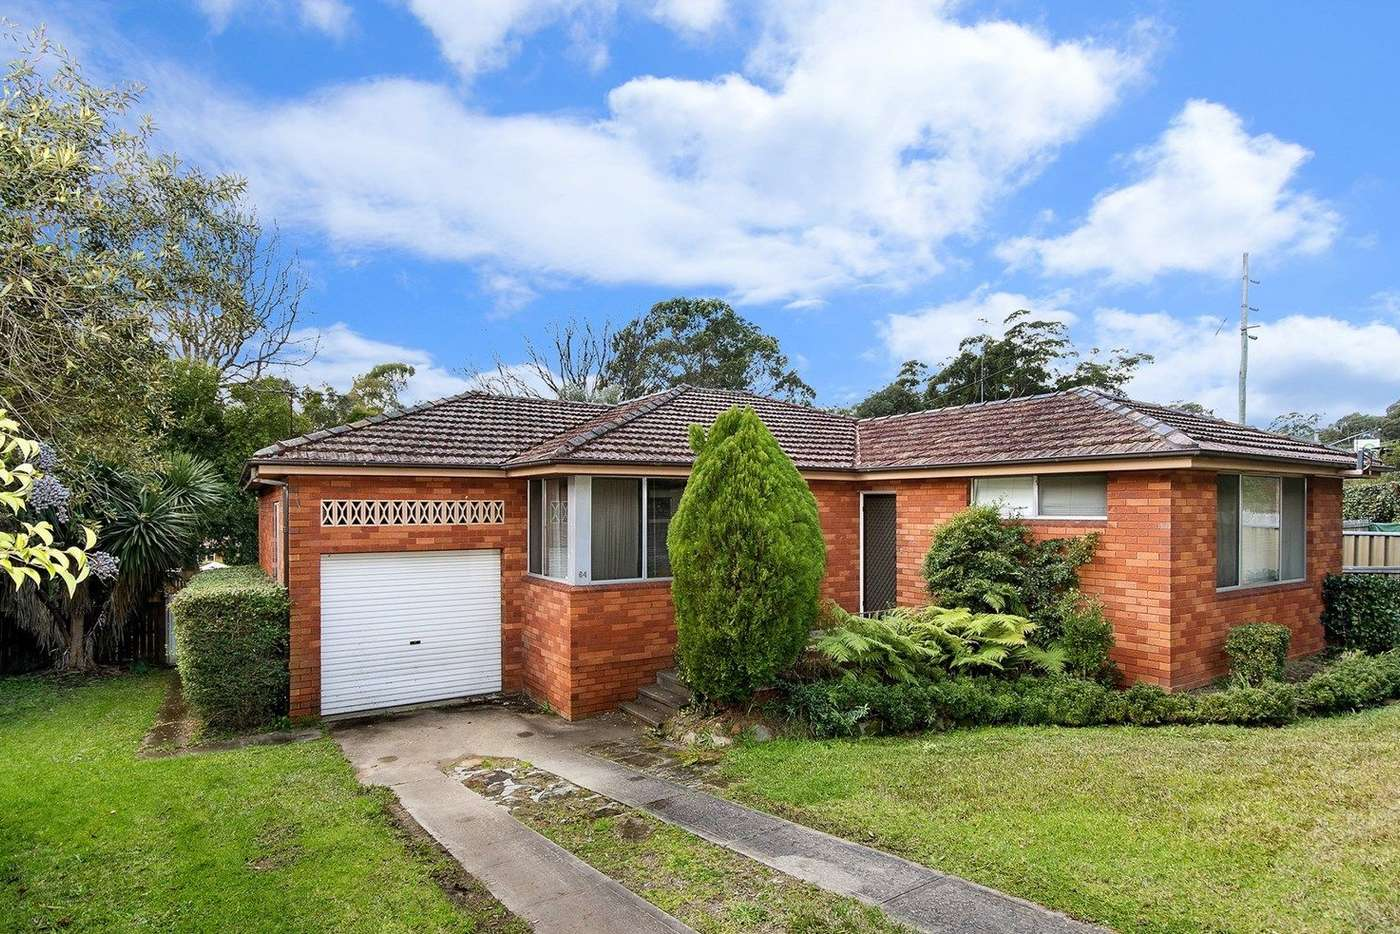 Main view of Homely house listing, 64 Jaffa Road, Dural NSW 2158